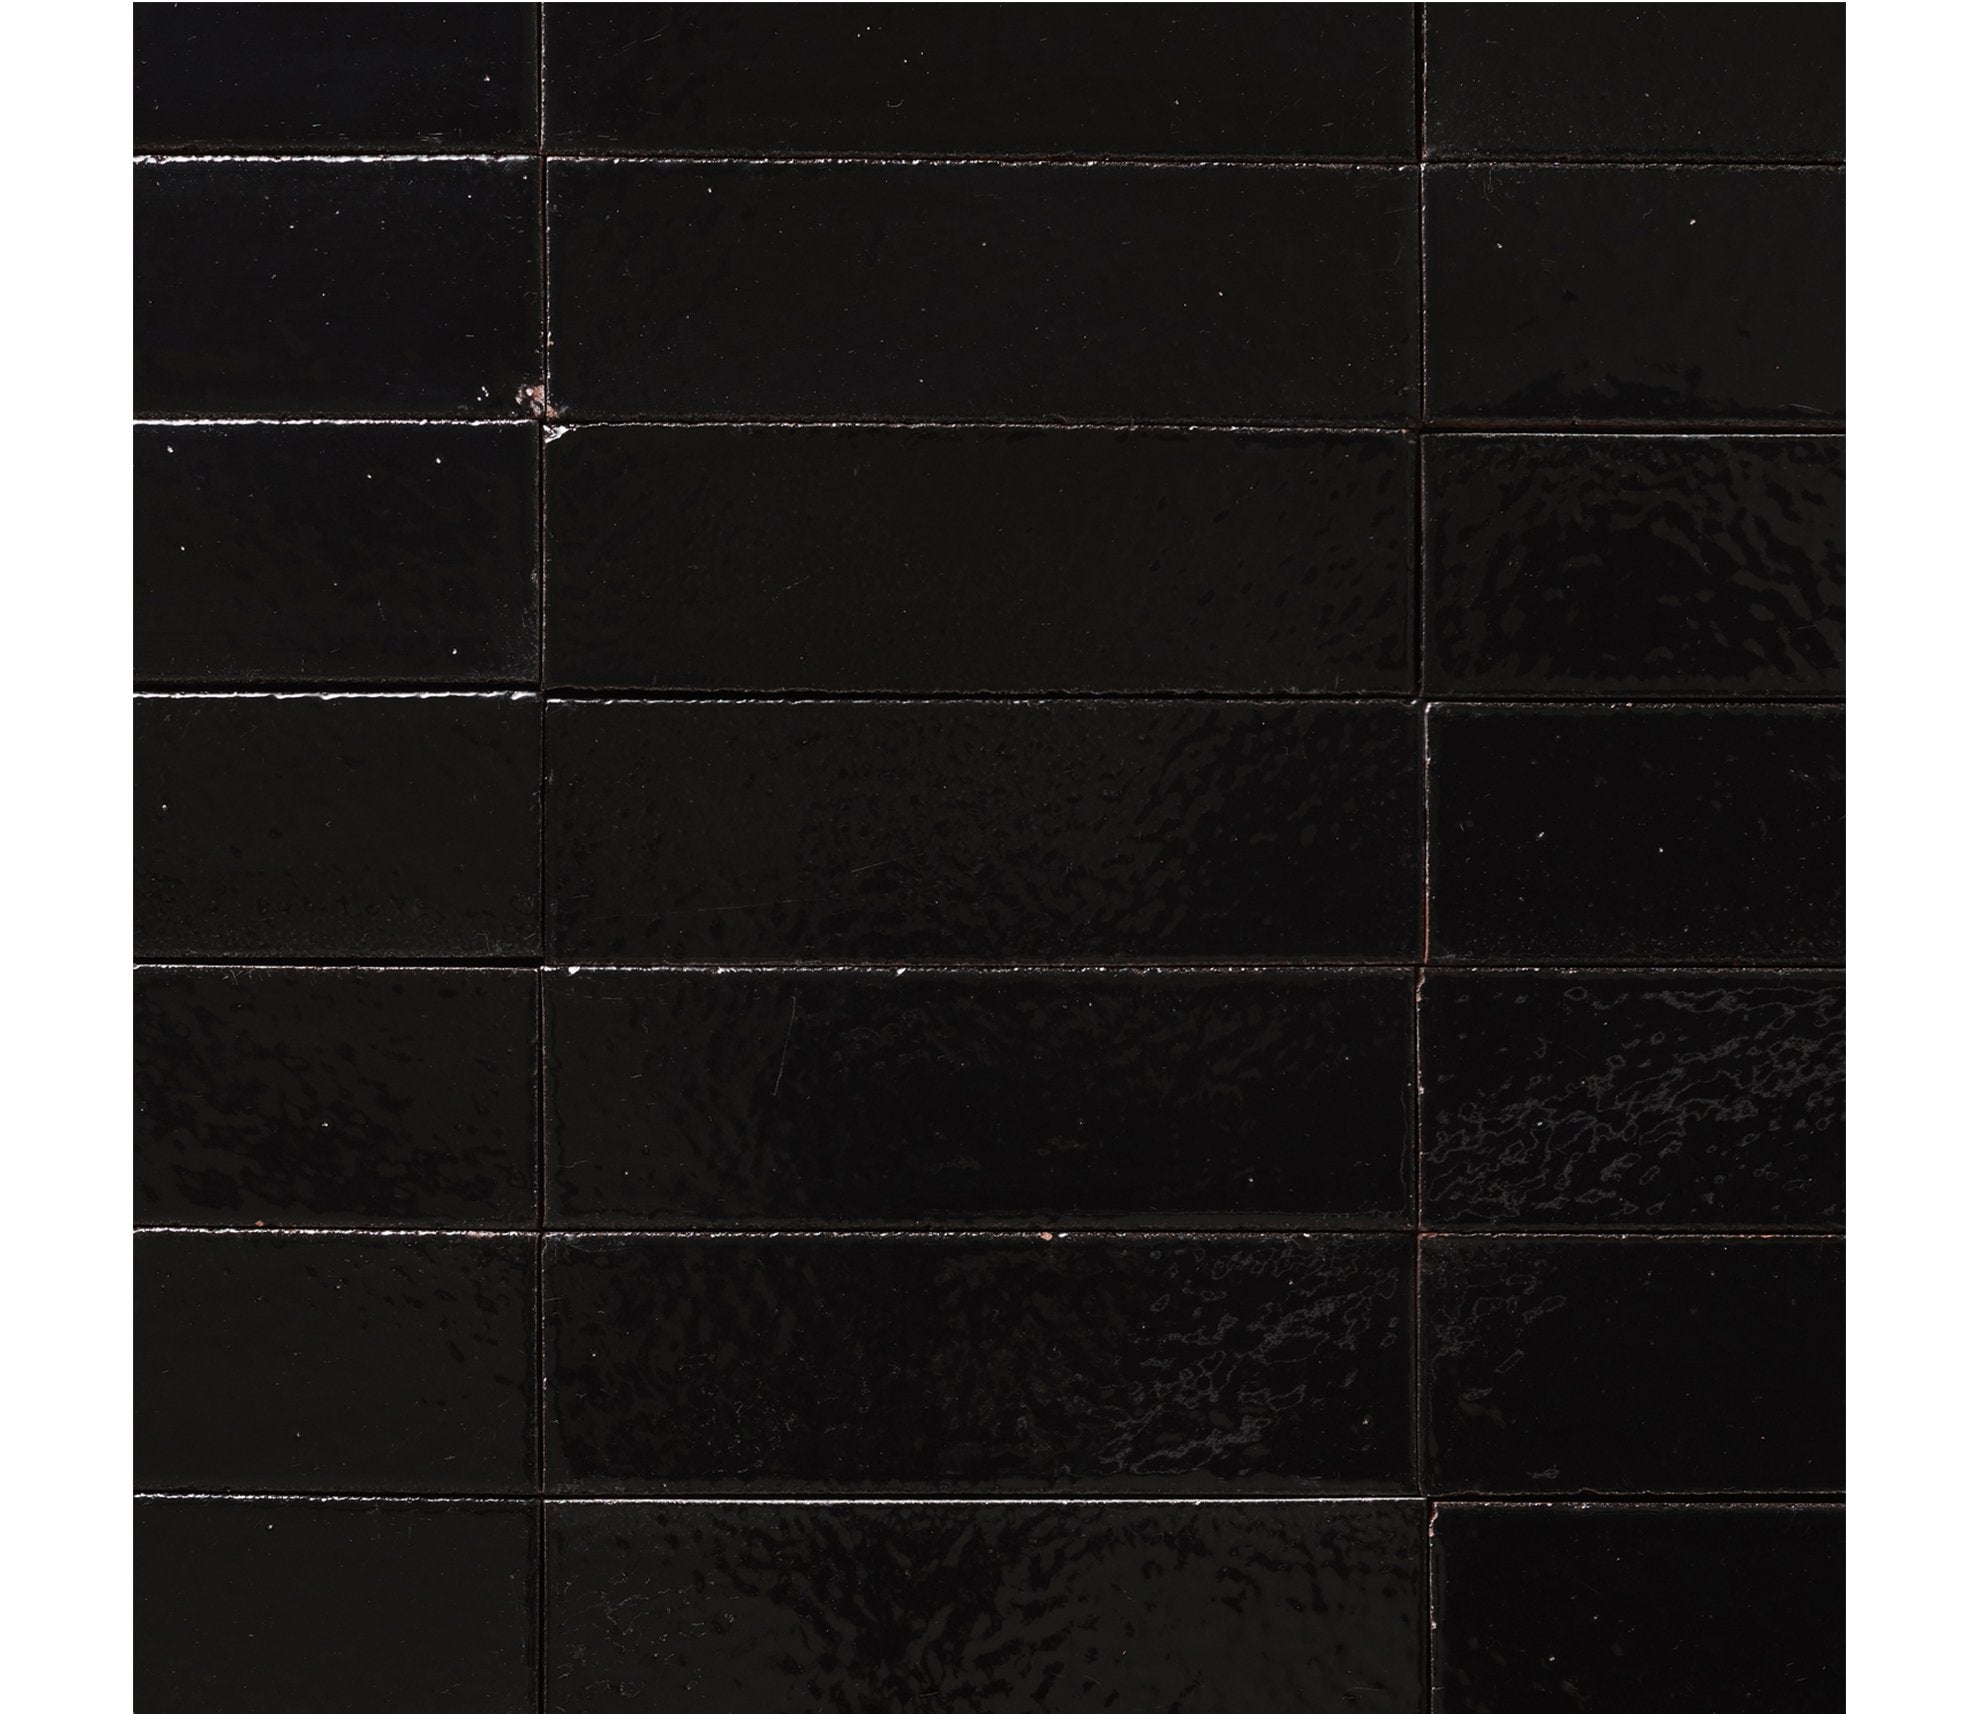 Terra Firma Glazed Bricks Product Image 56